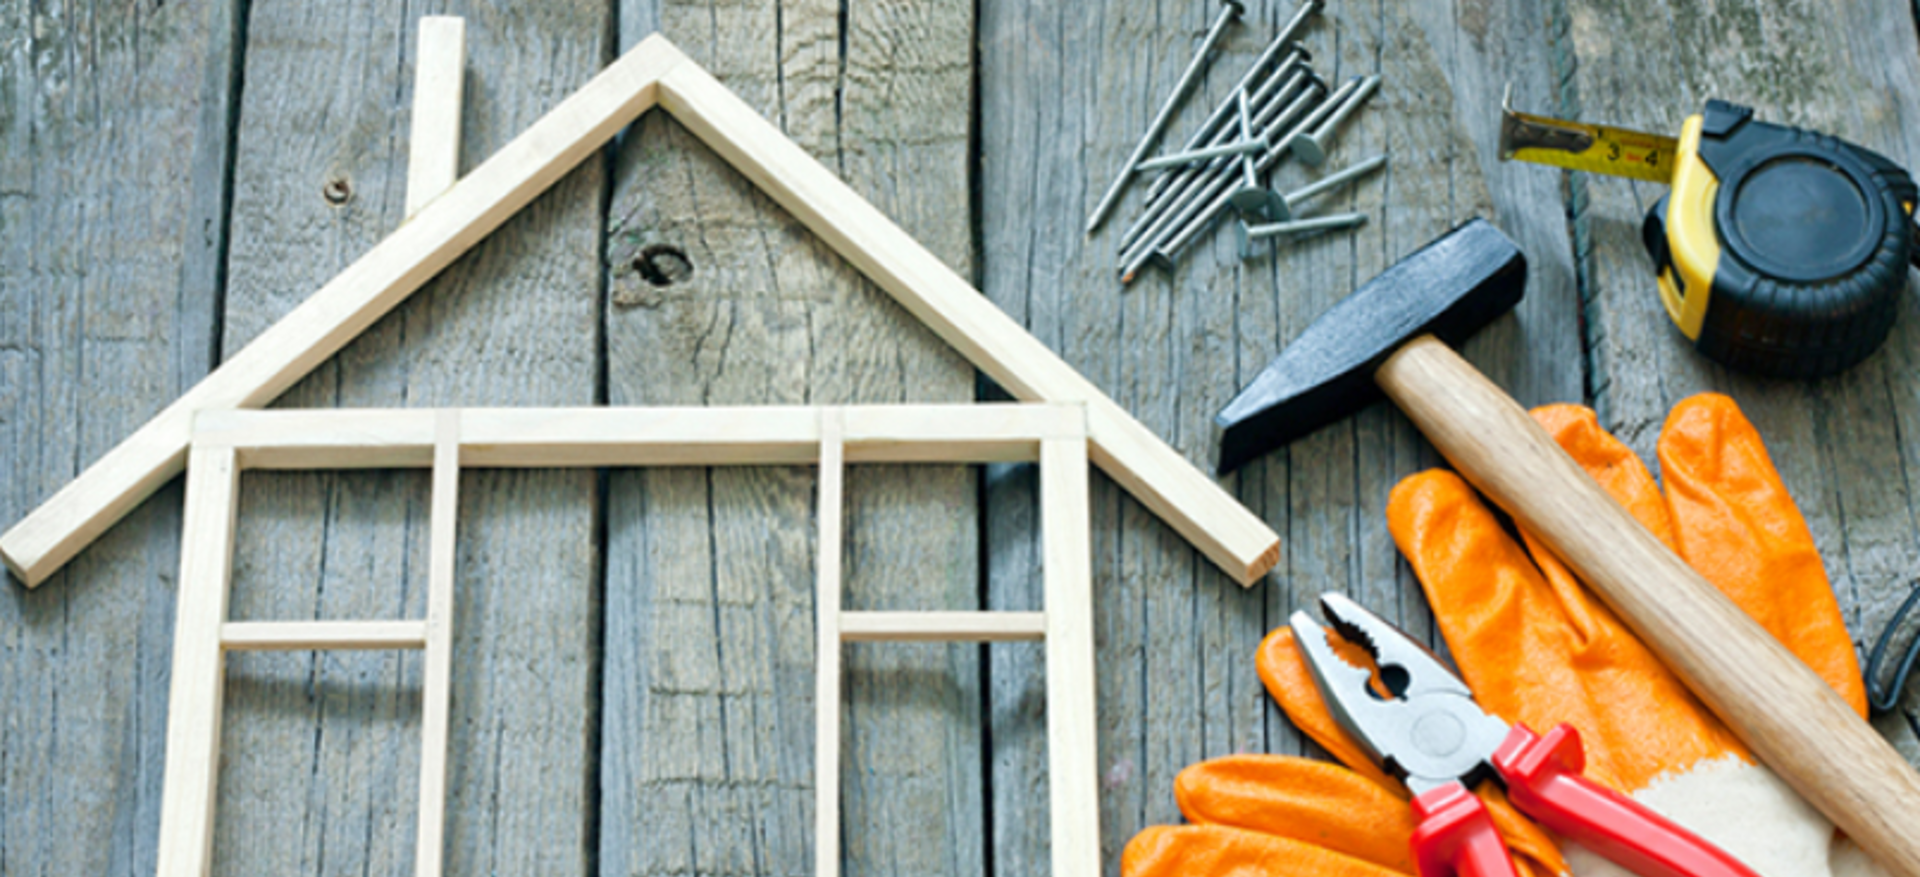 Four Renovation Shortcuts that Can Lead to Disaster